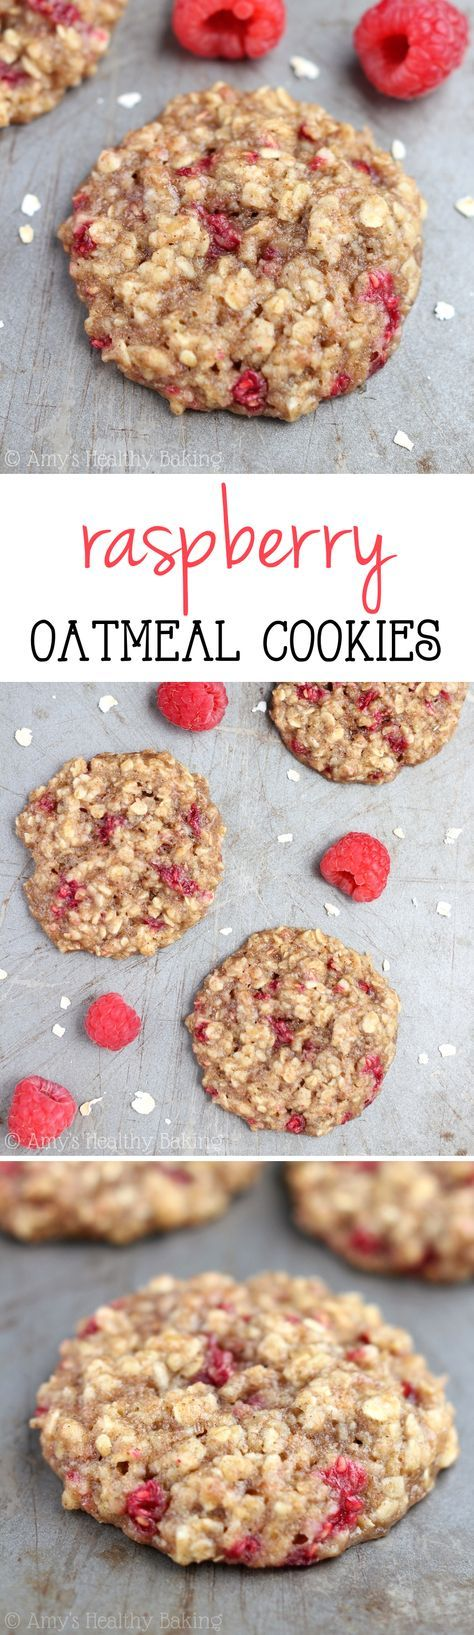 CleanEating Raspberry Oatmeal Cookies  these skinny cookies don't taste healthy at all! You'll never need another oatmeal cookie recipe again! is part of Oatmeal cookie recipes -